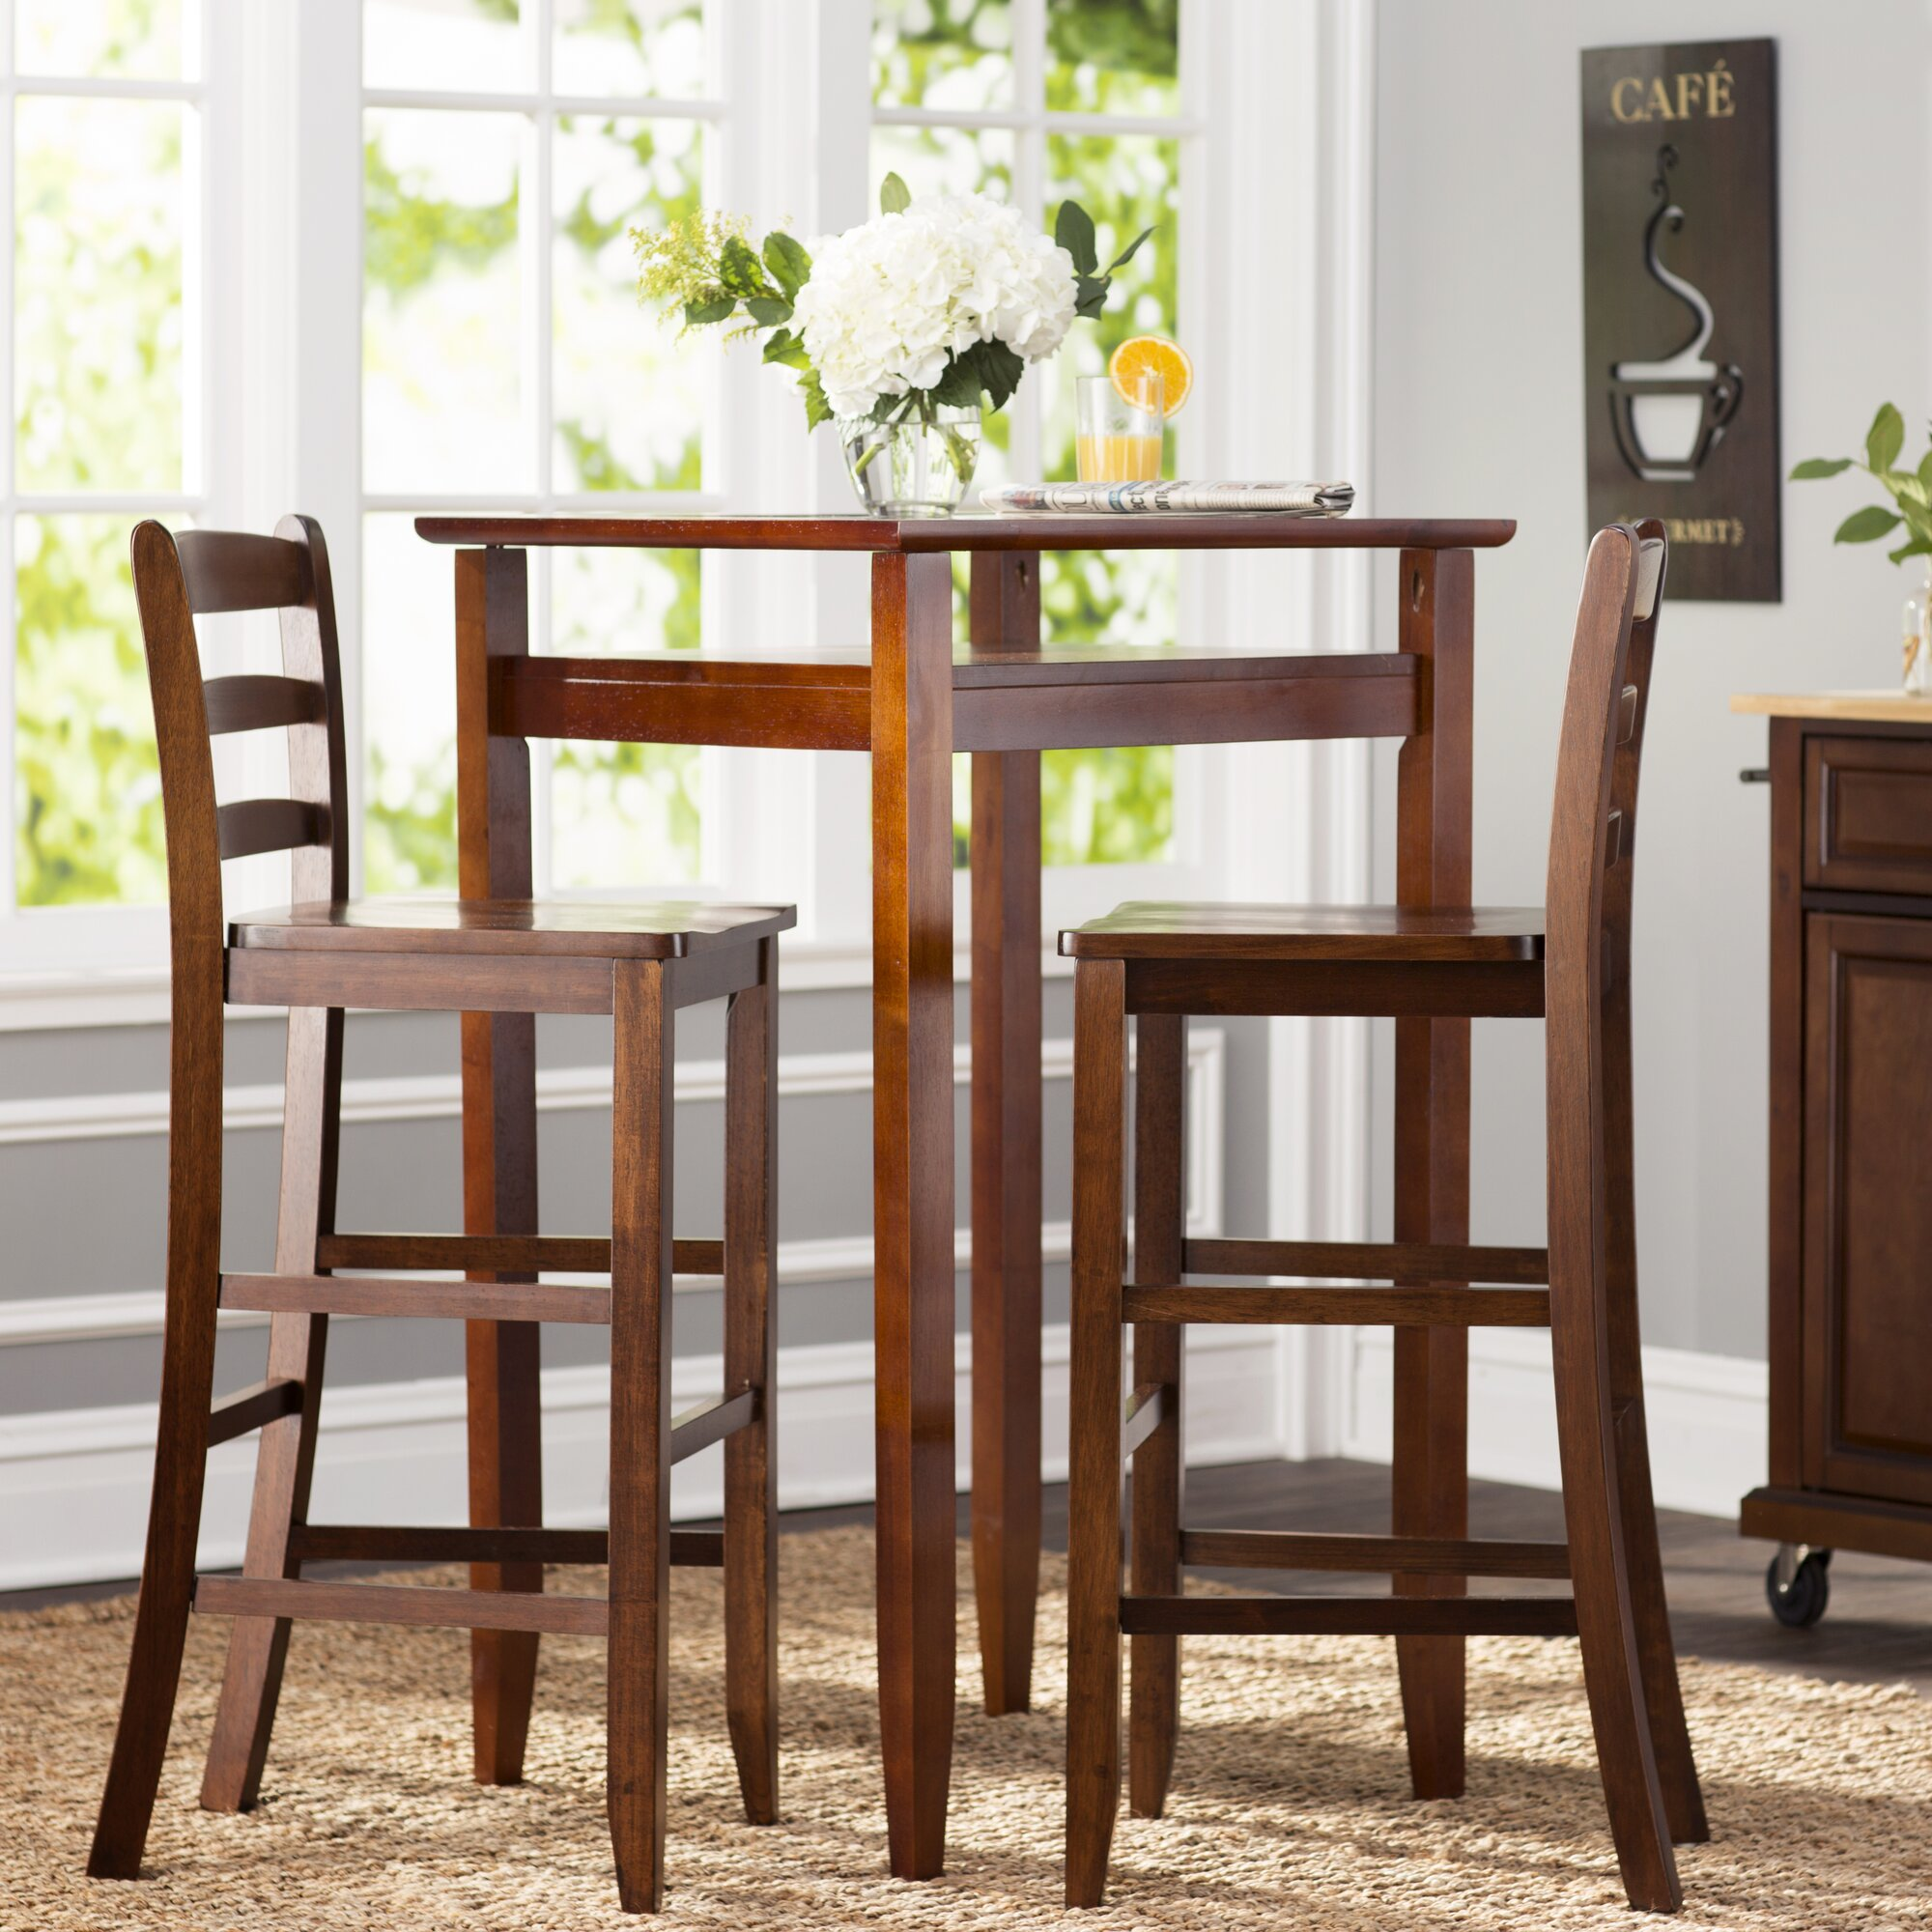 Kitchen pub table and chairs - Halo 3 Piece Pub Table Set